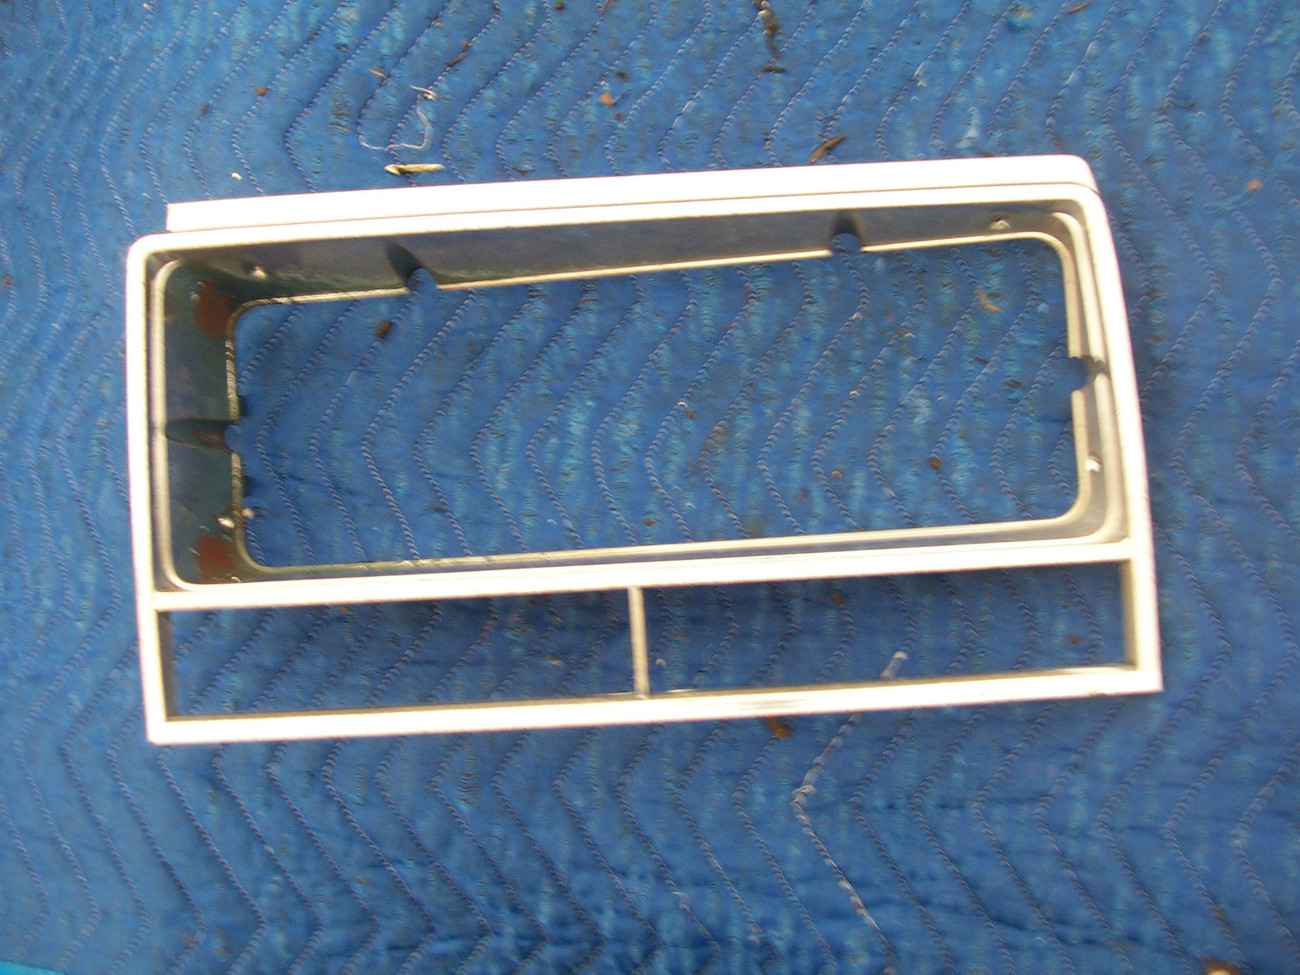 Primary image for 1985 EL CAMINO LEFT HEADLIGHT TRIM GRILL BEZEL HAS WEAR OEM USED ORIG CHEVROLET